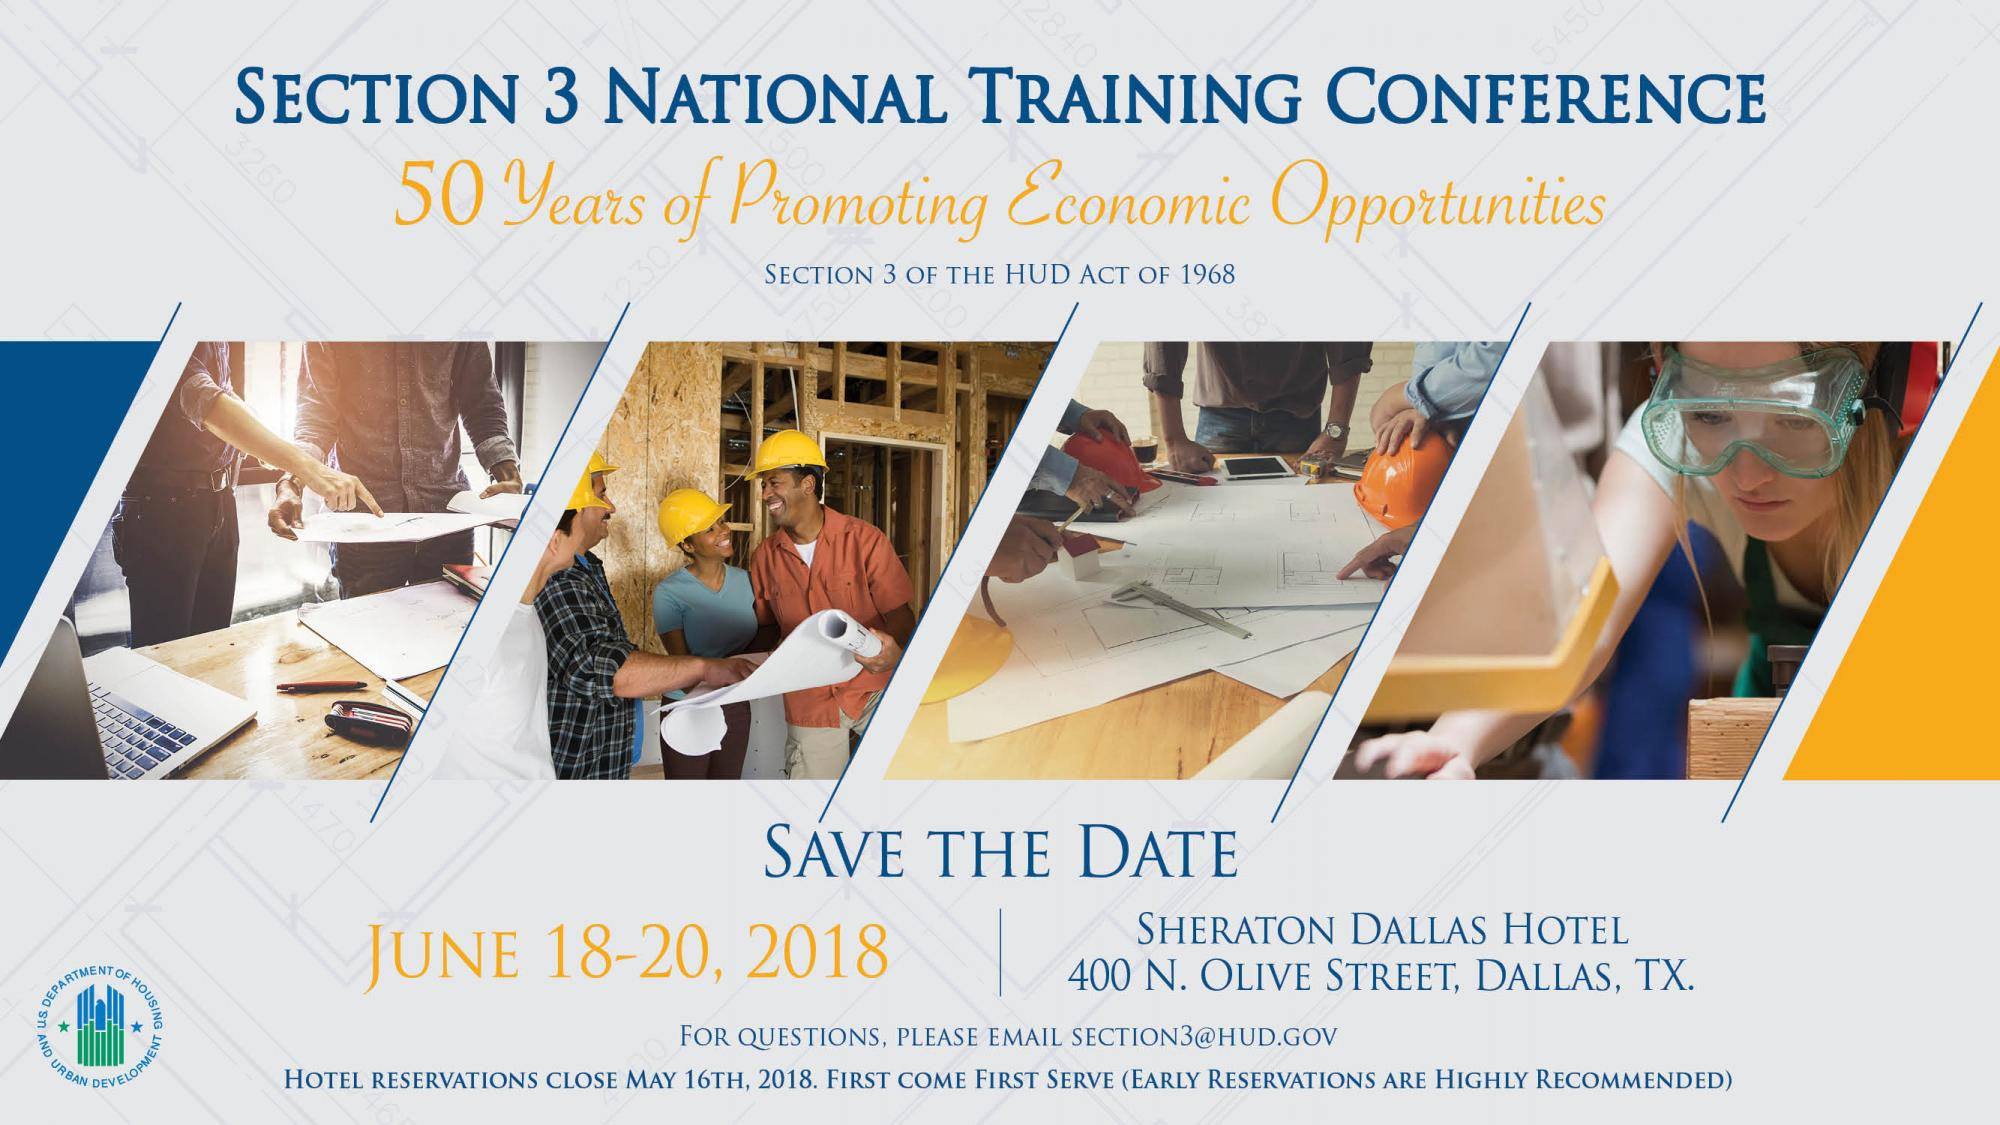 Section 3 National Training Conference 50 Years Of Economic Opportunity